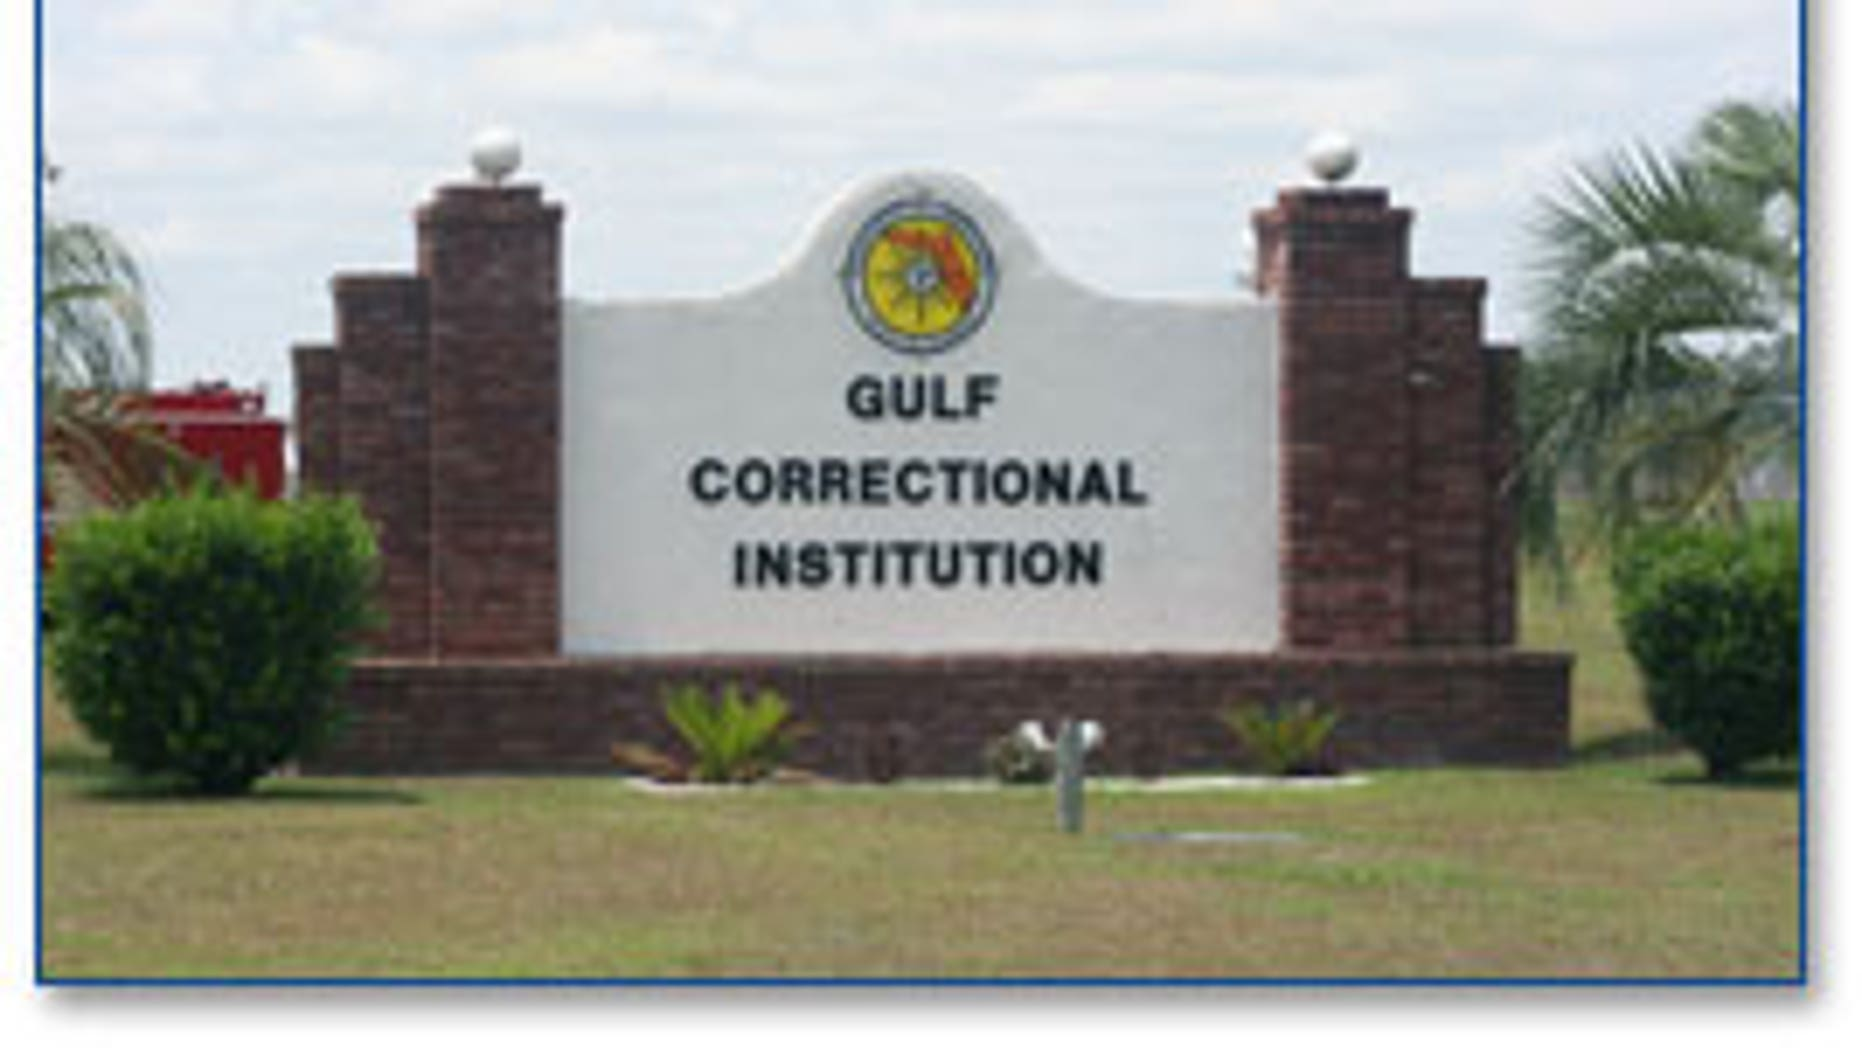 A prison riot injured 6 employees and 1 inmate at the Gulf Correctional Institution in Florida Wednesday morning.